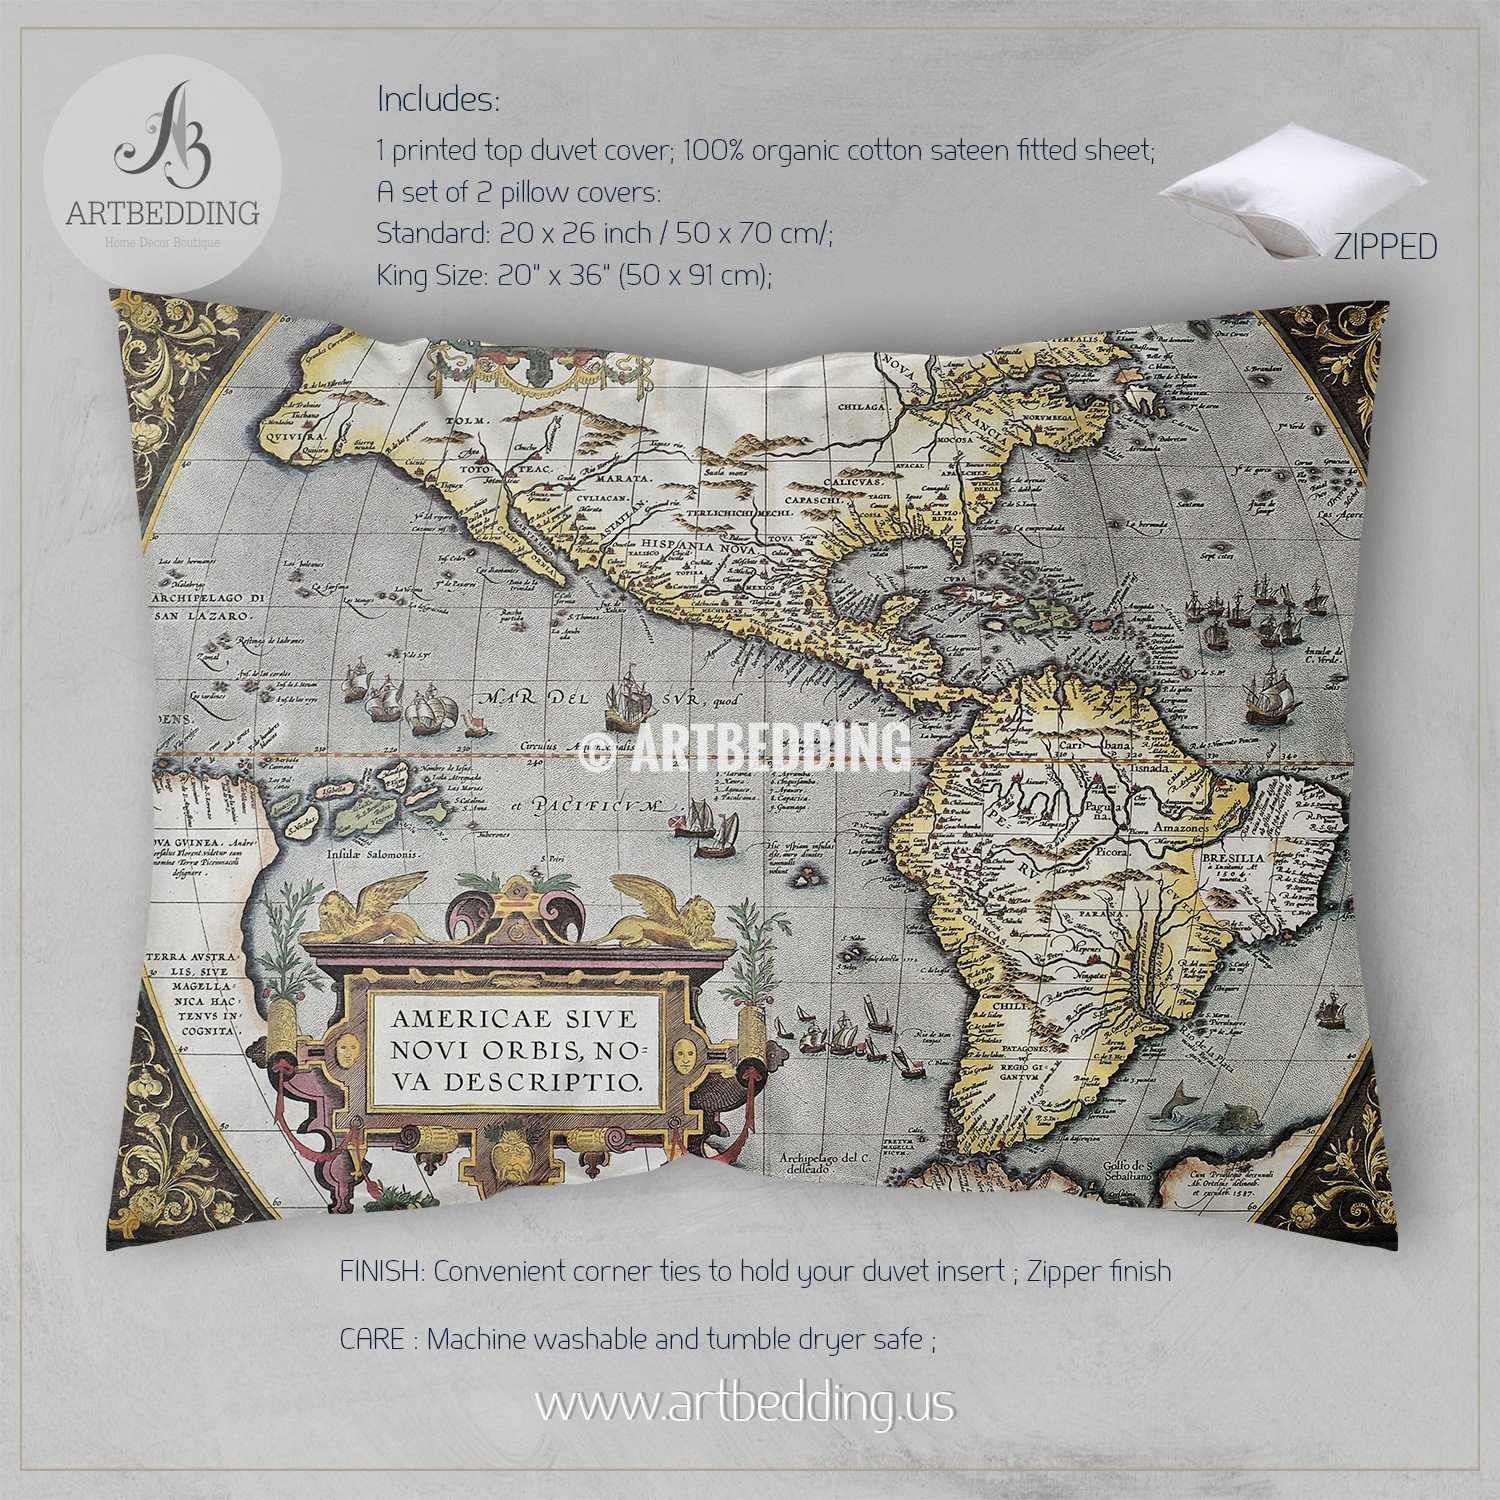 America Old map bedding, Vintage atlas 1570 old America map duvet cover on old map sea monsters, old world maps framed, ancient beasts and monsters, antique nautical monsters, maps with sea monsters, see monsters, old world maps with mermaids, nice silly sea monsters, old maps of the world, map of us monsters, old world map with countries, here there be monsters, old world maps murals, old world explorer maps, old world maps printable, old japanese monsters, ancient sea monsters, vintage maritime sea monsters, old nautical maps,